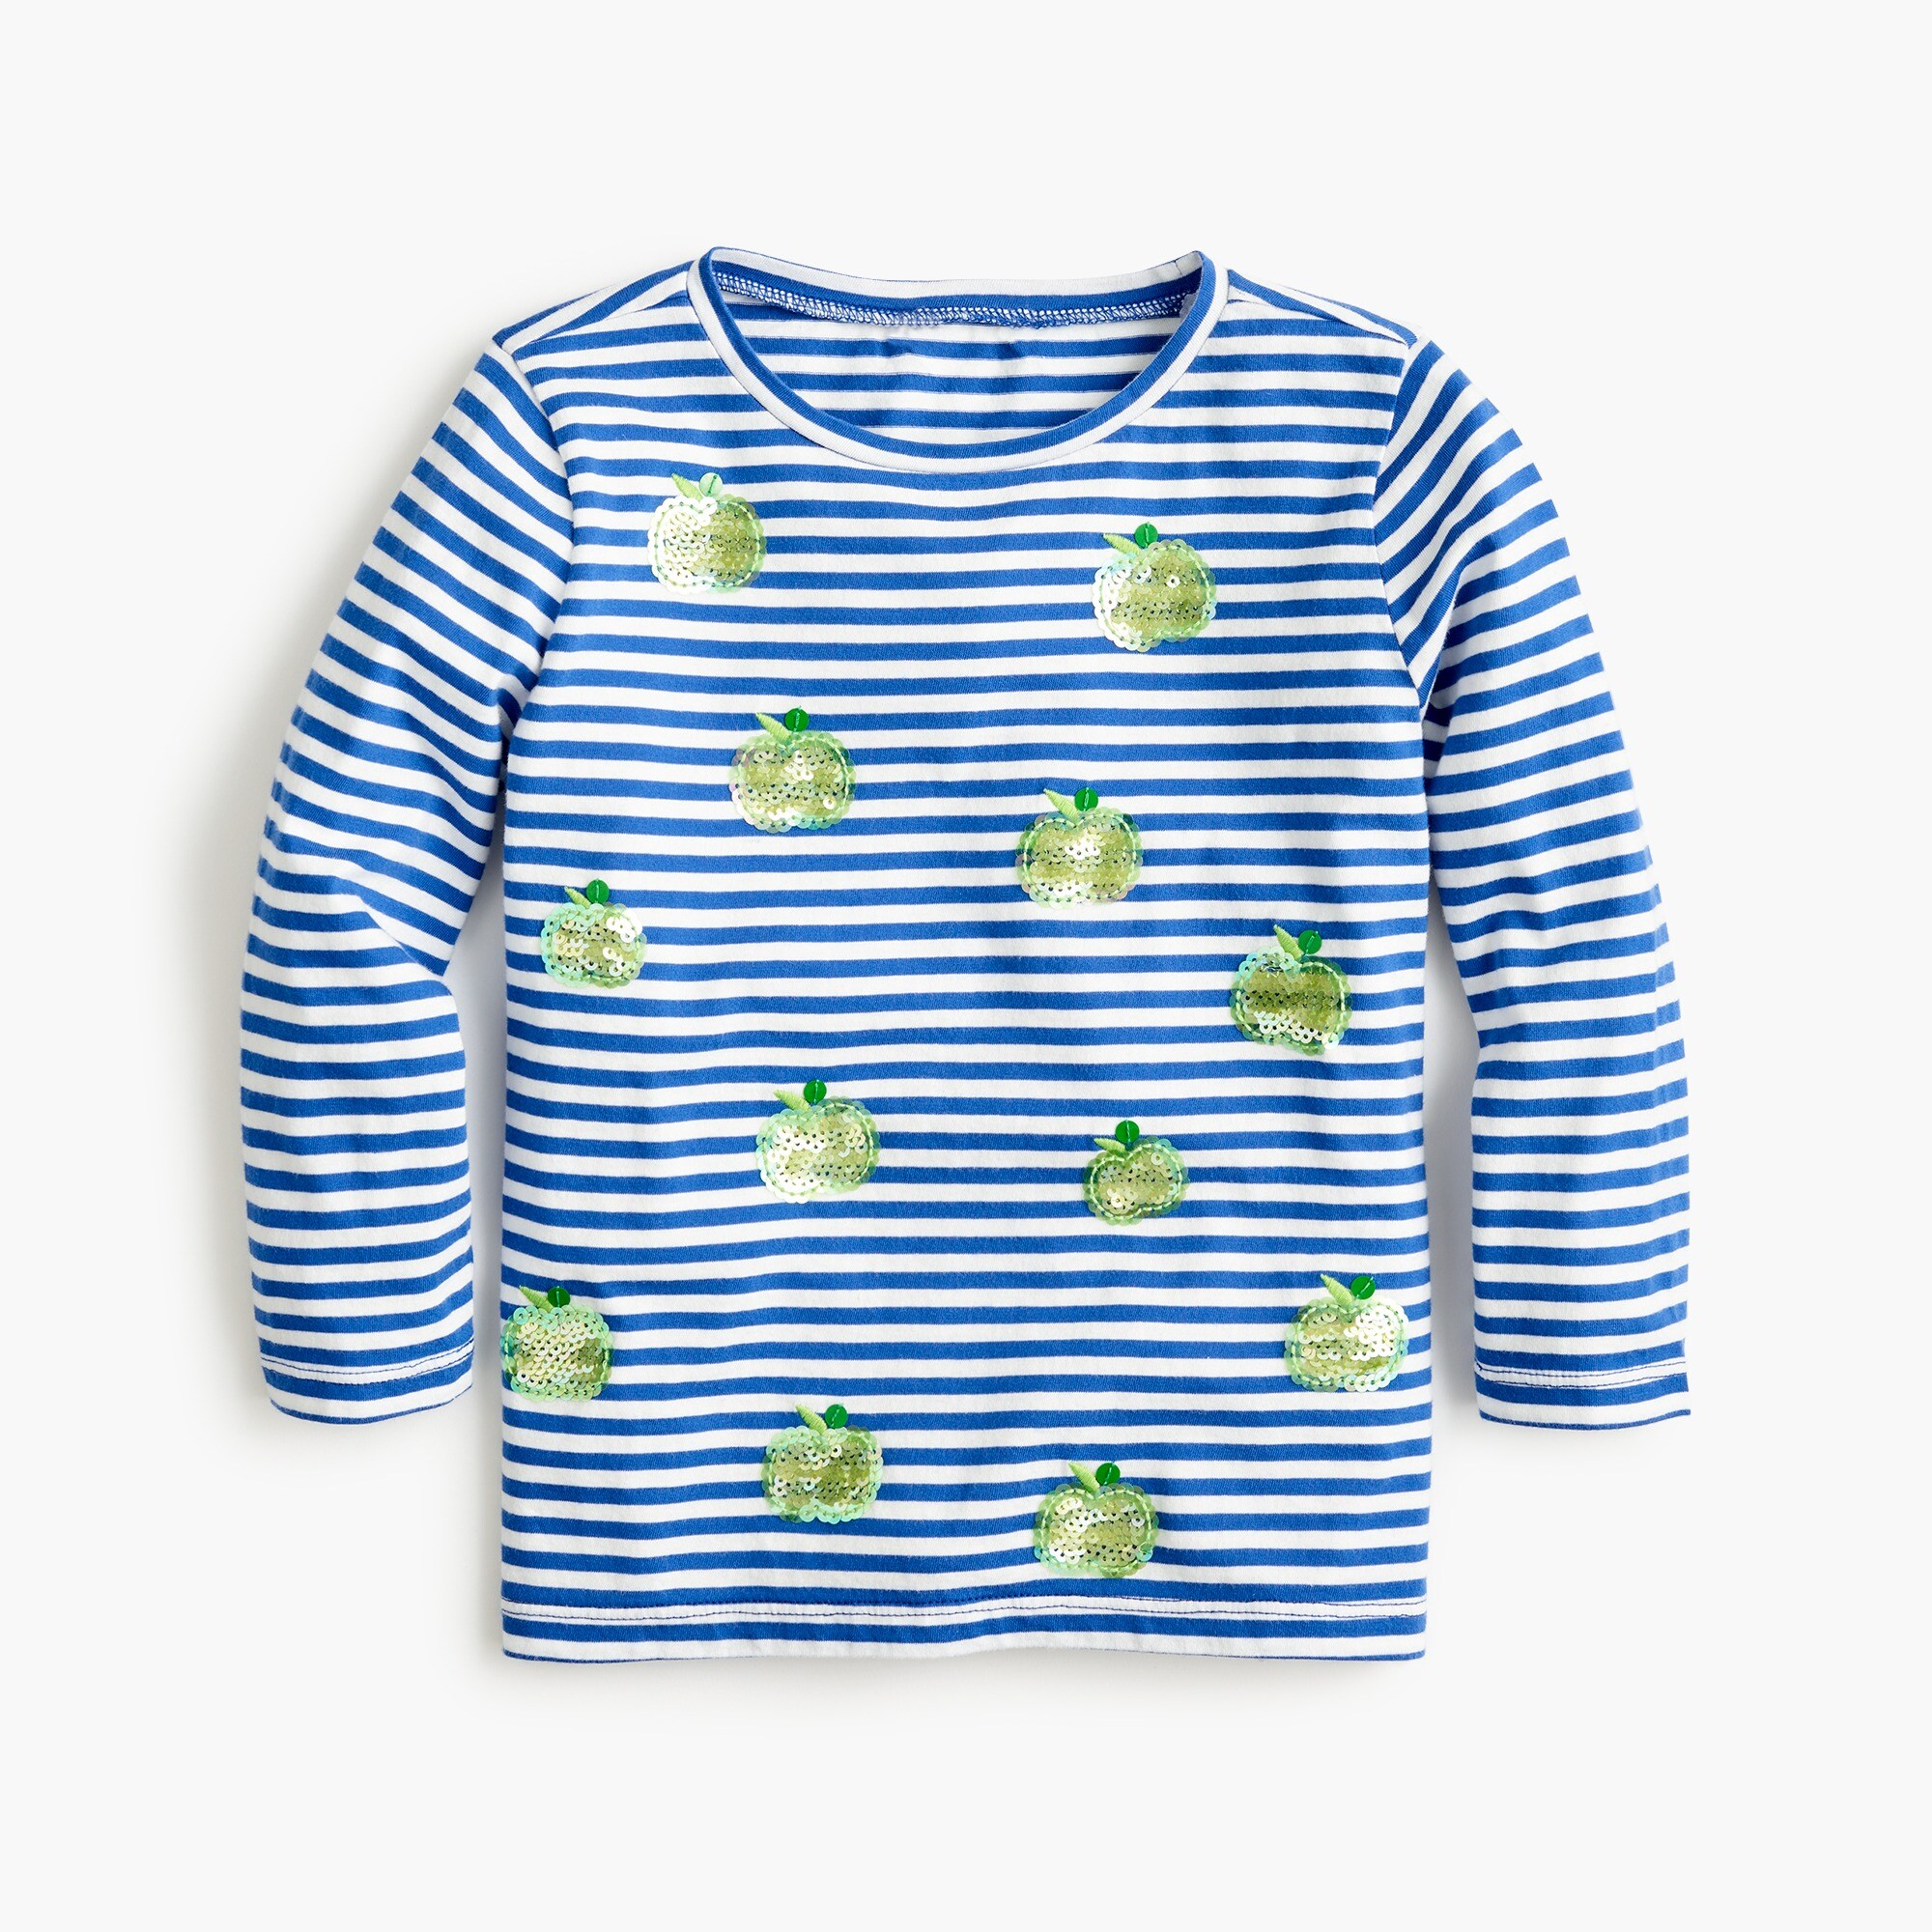 Girls' striped T-shirt with apples